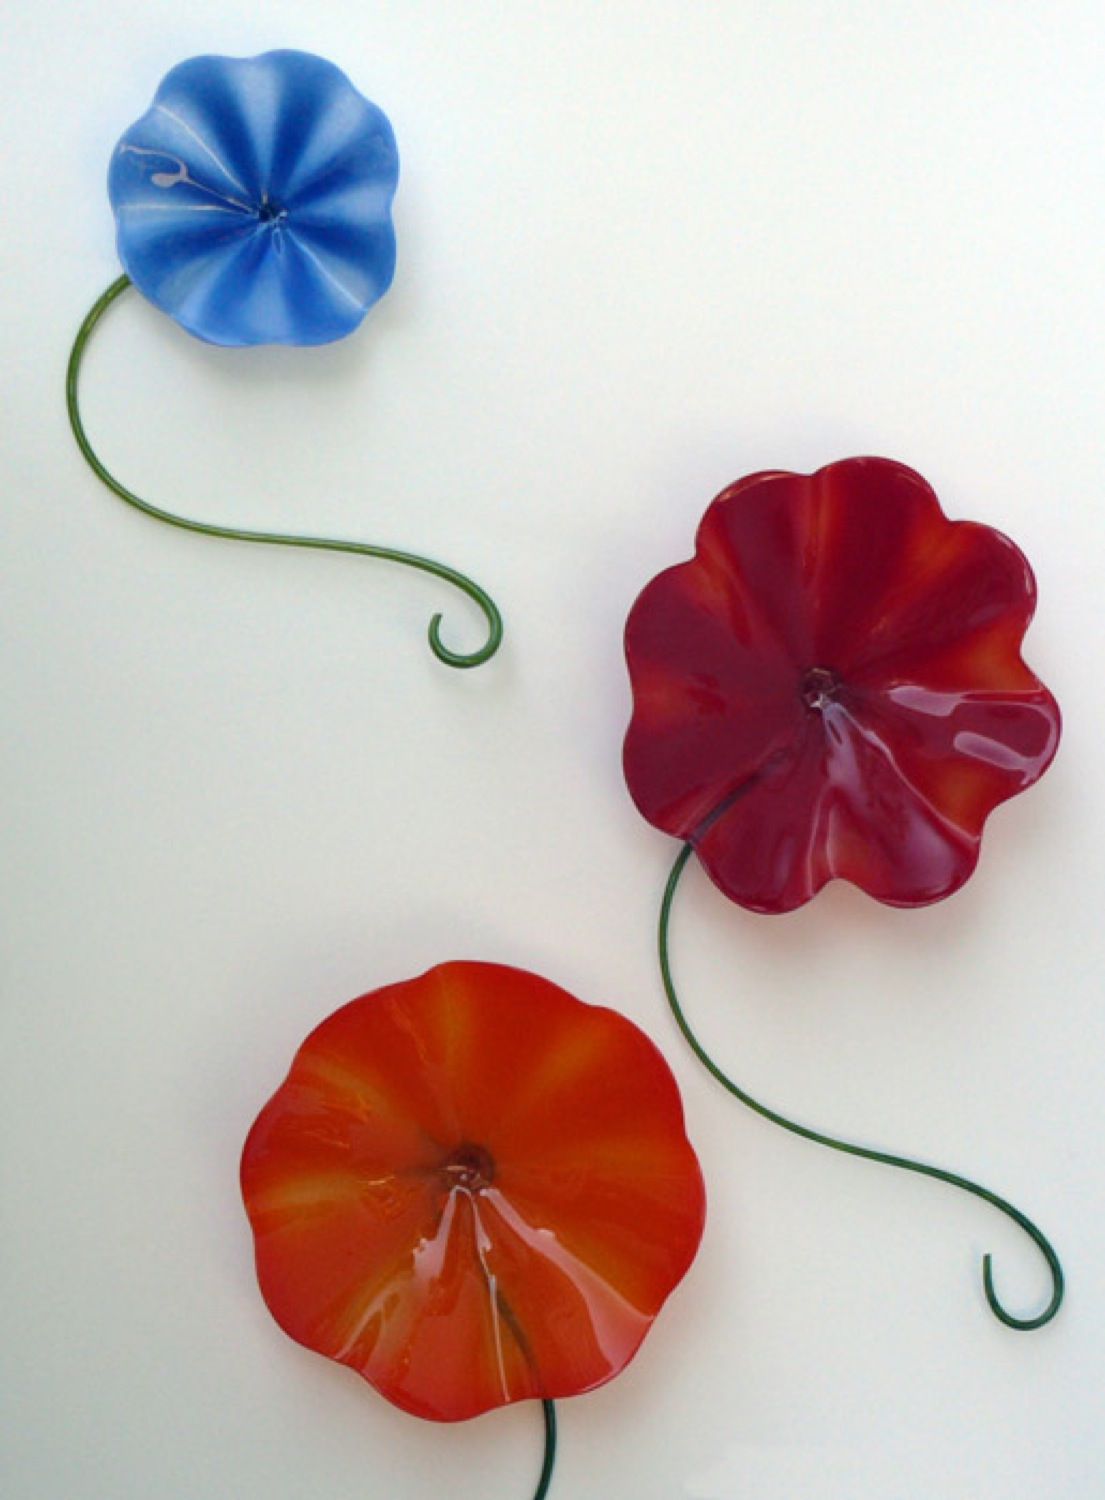 Leonoff Art Glass-Wall Flowers-04.jpg